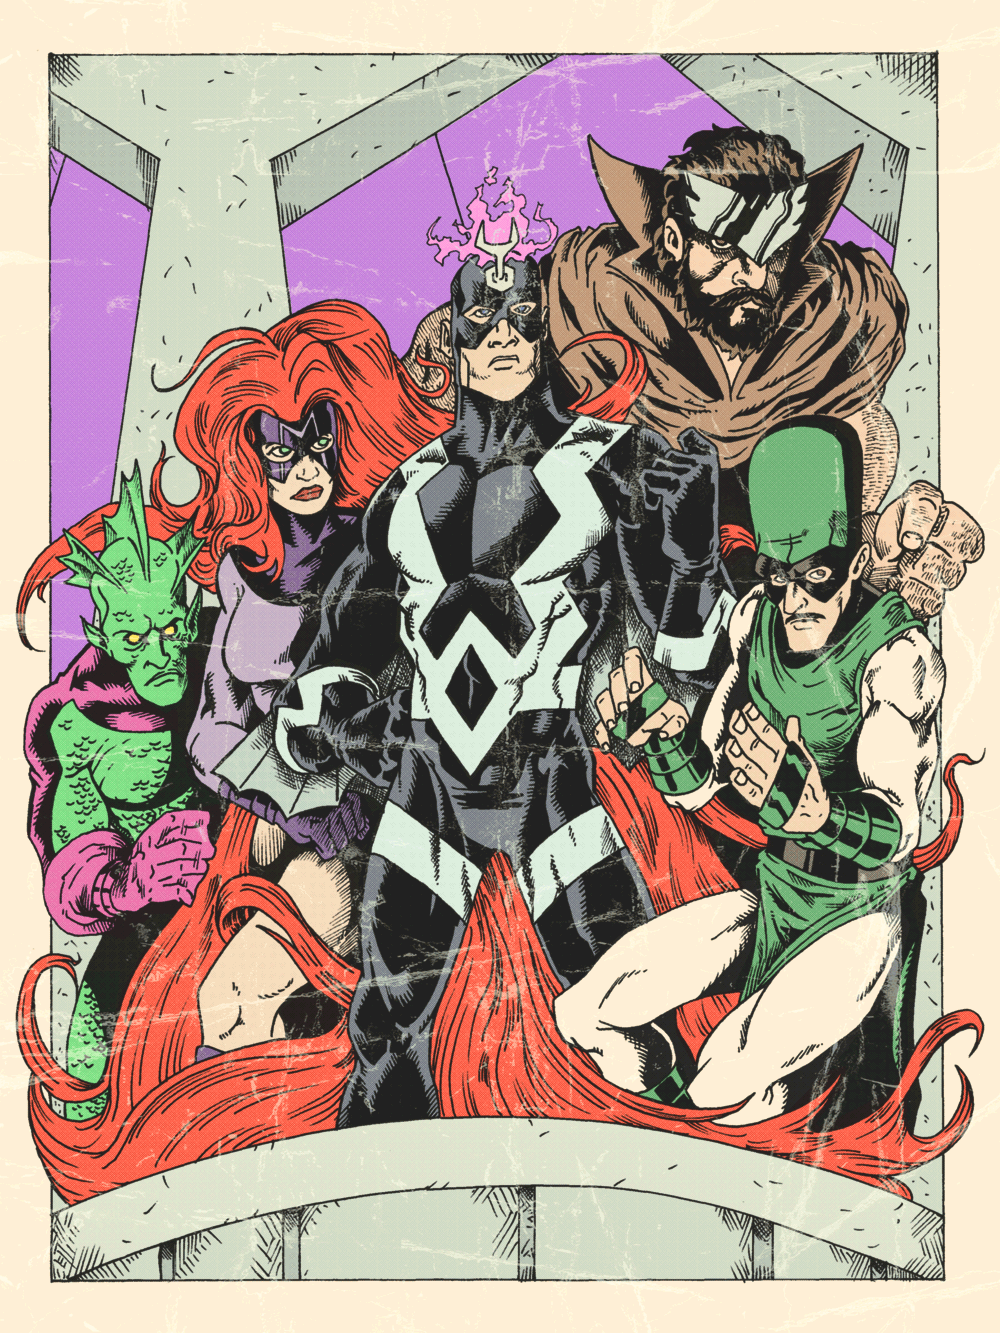 400. The Inhumans